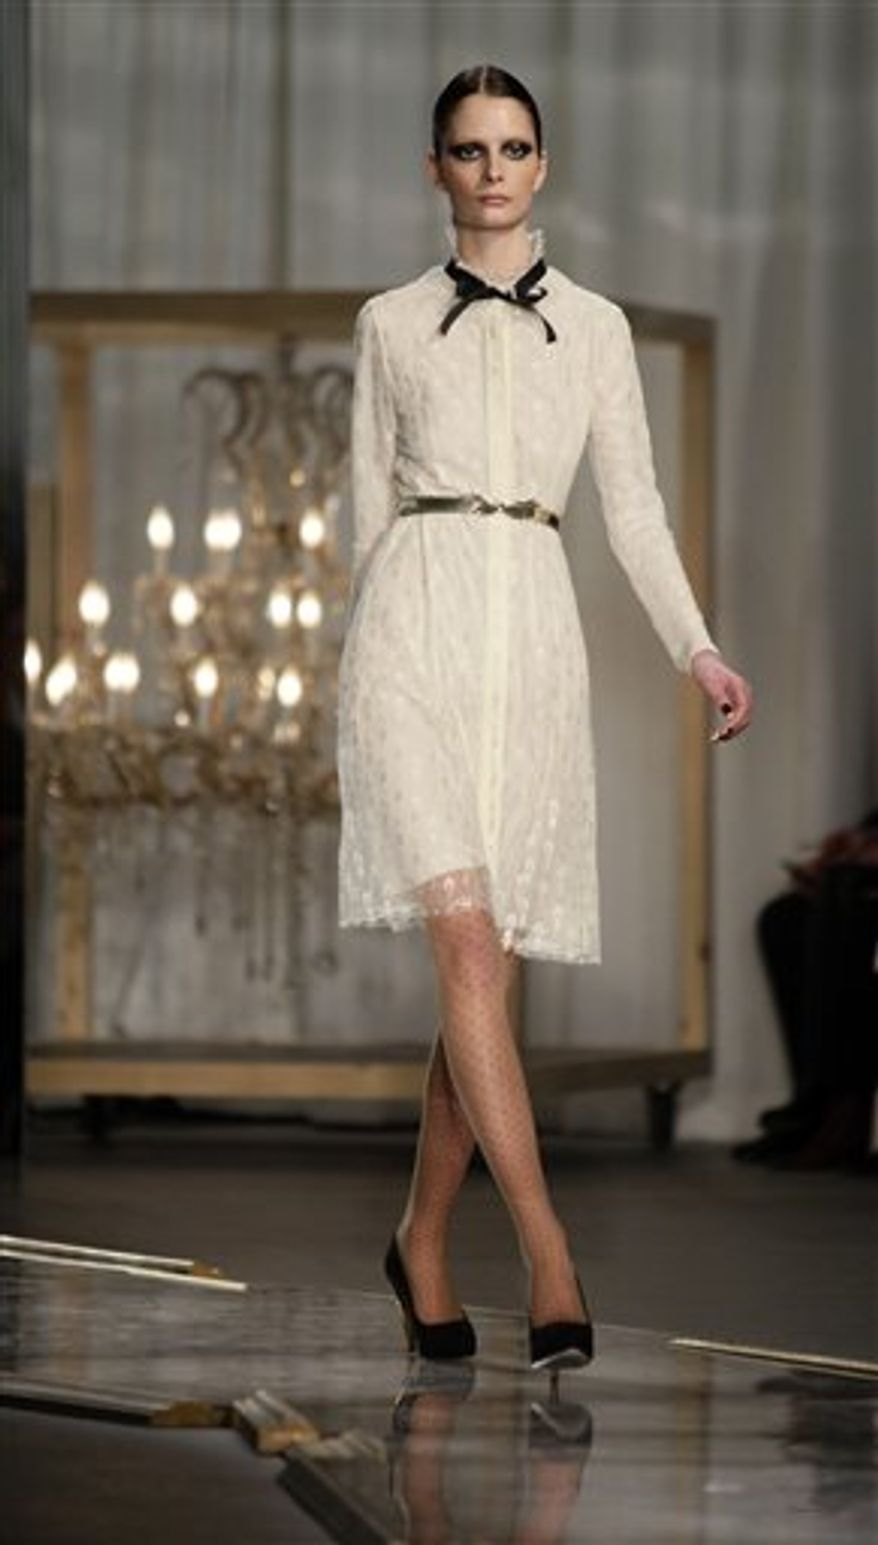 Fashion from the Fall 2011 collection of Jason Wu is modeled on Friday, Feb. 11, 2011 in New York.   (AP Photo/Bebeto Matthews)